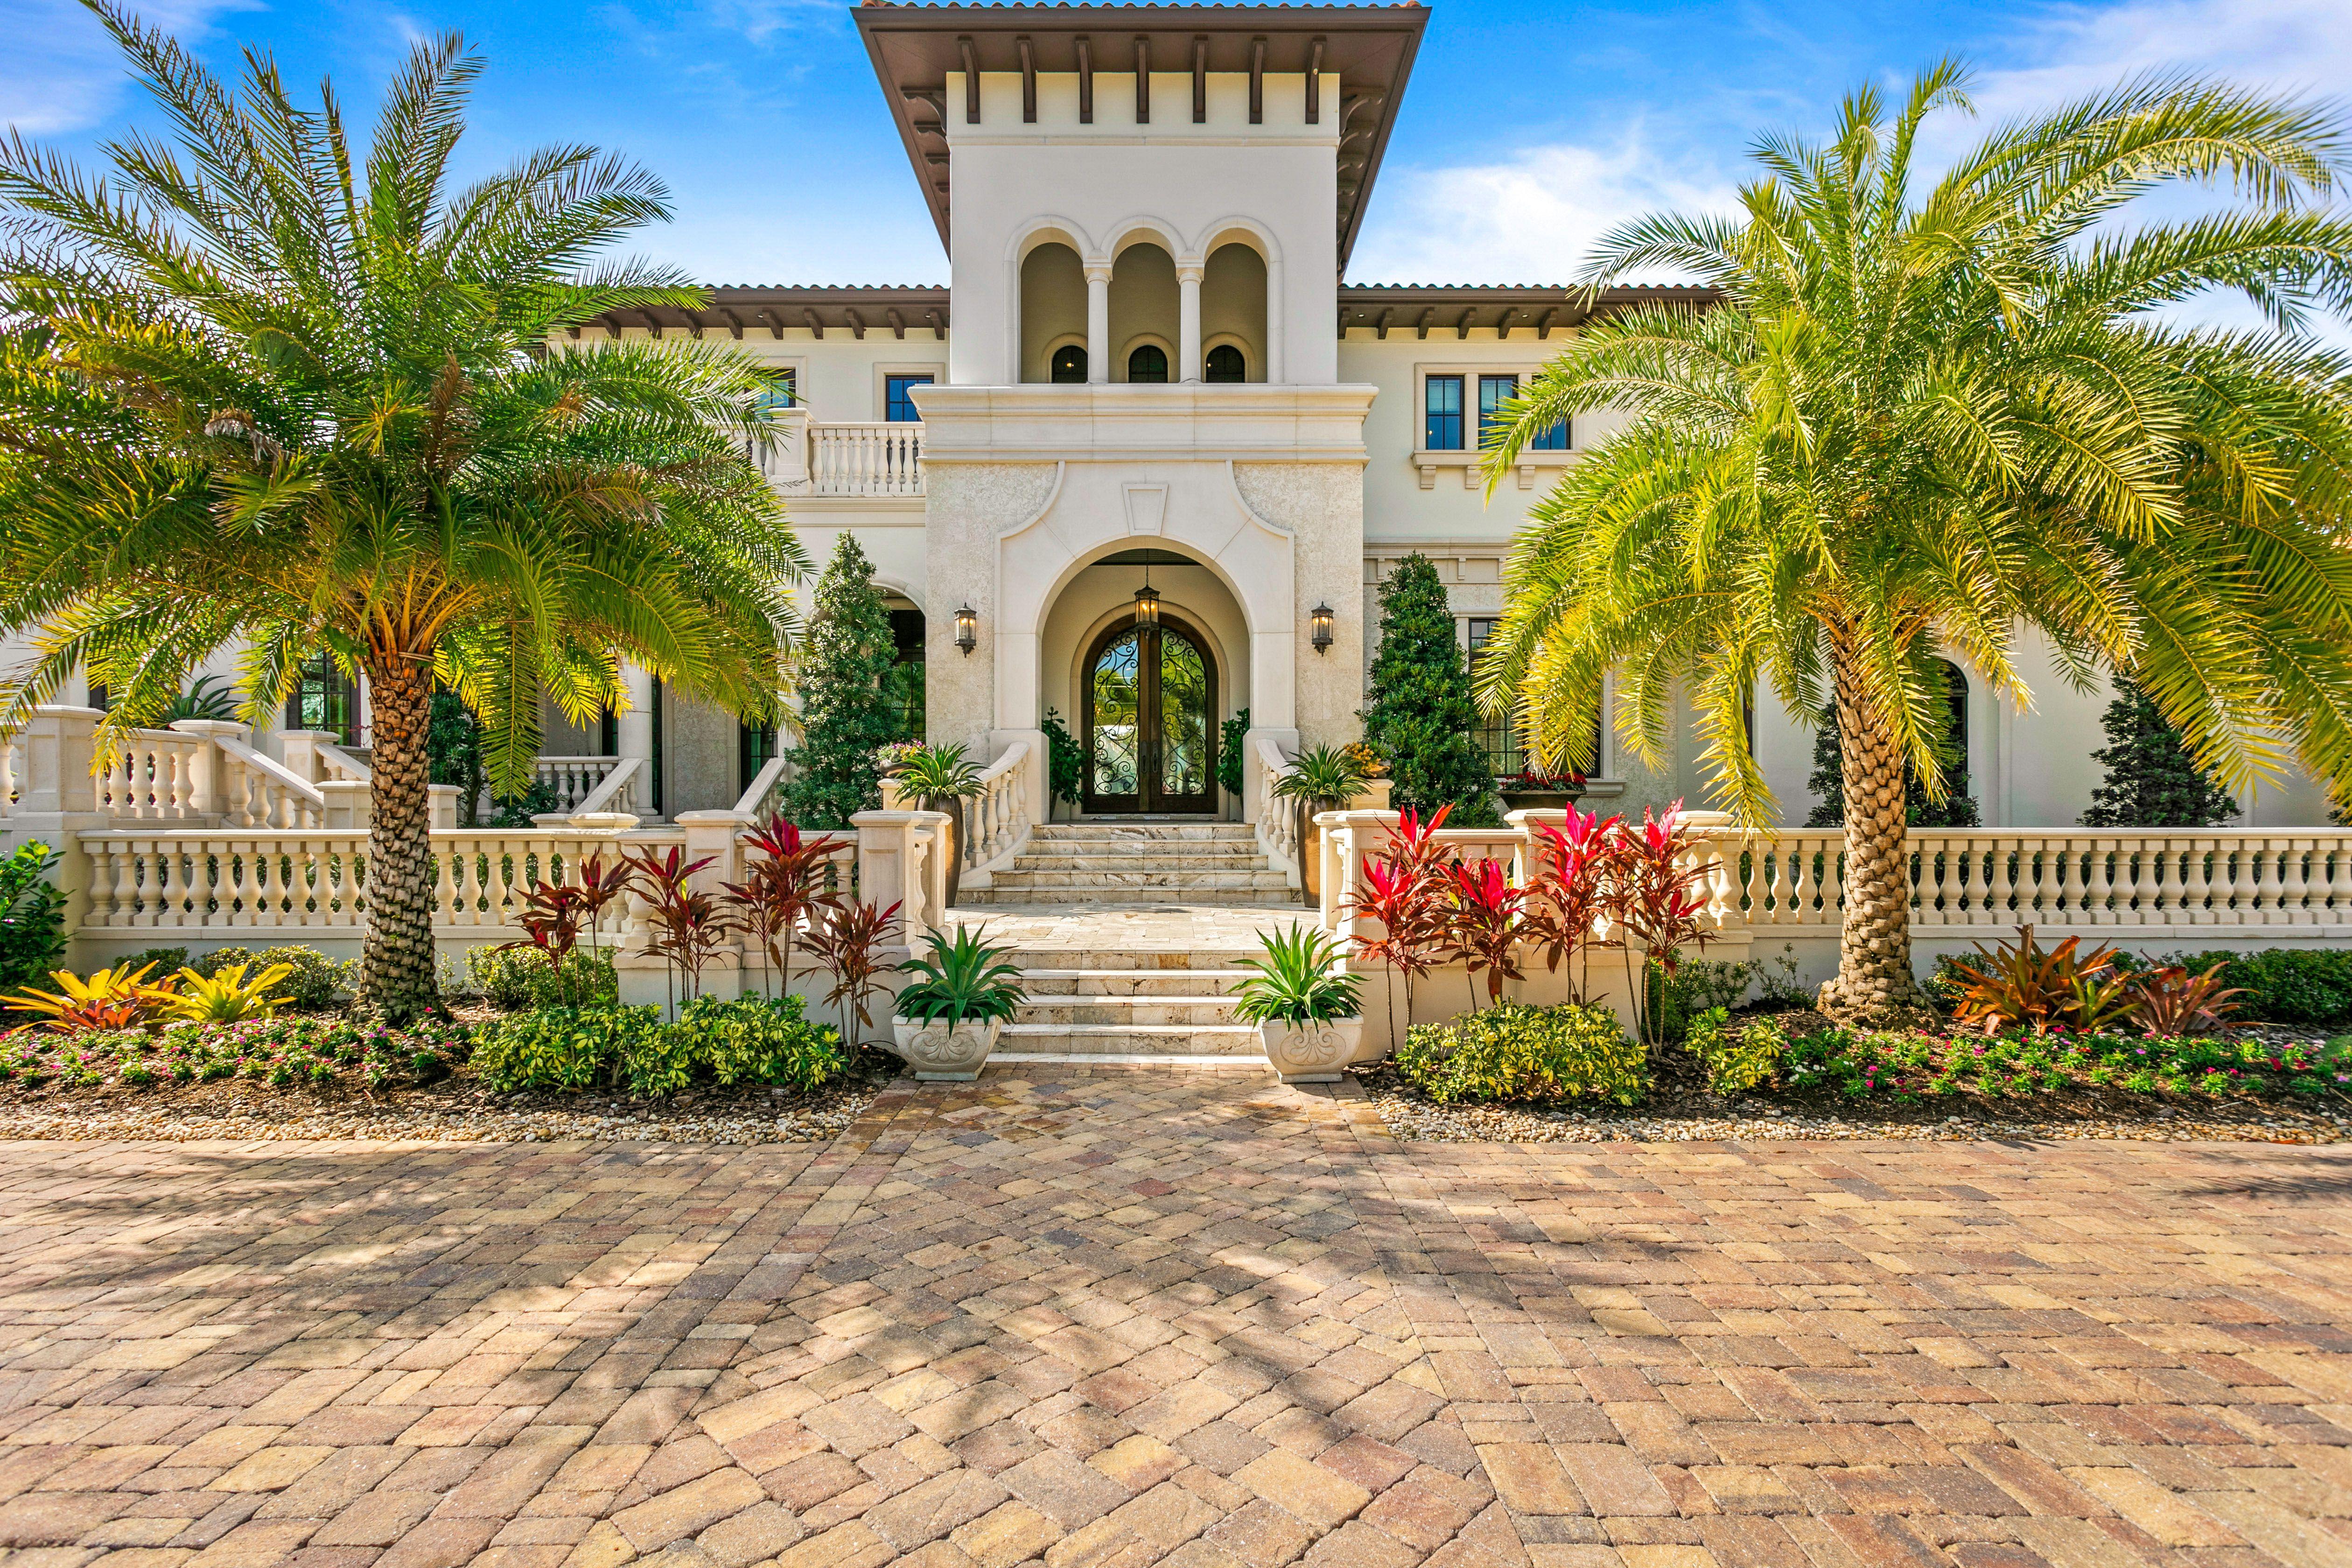 2621 N. Dundee St. palm tree entrance